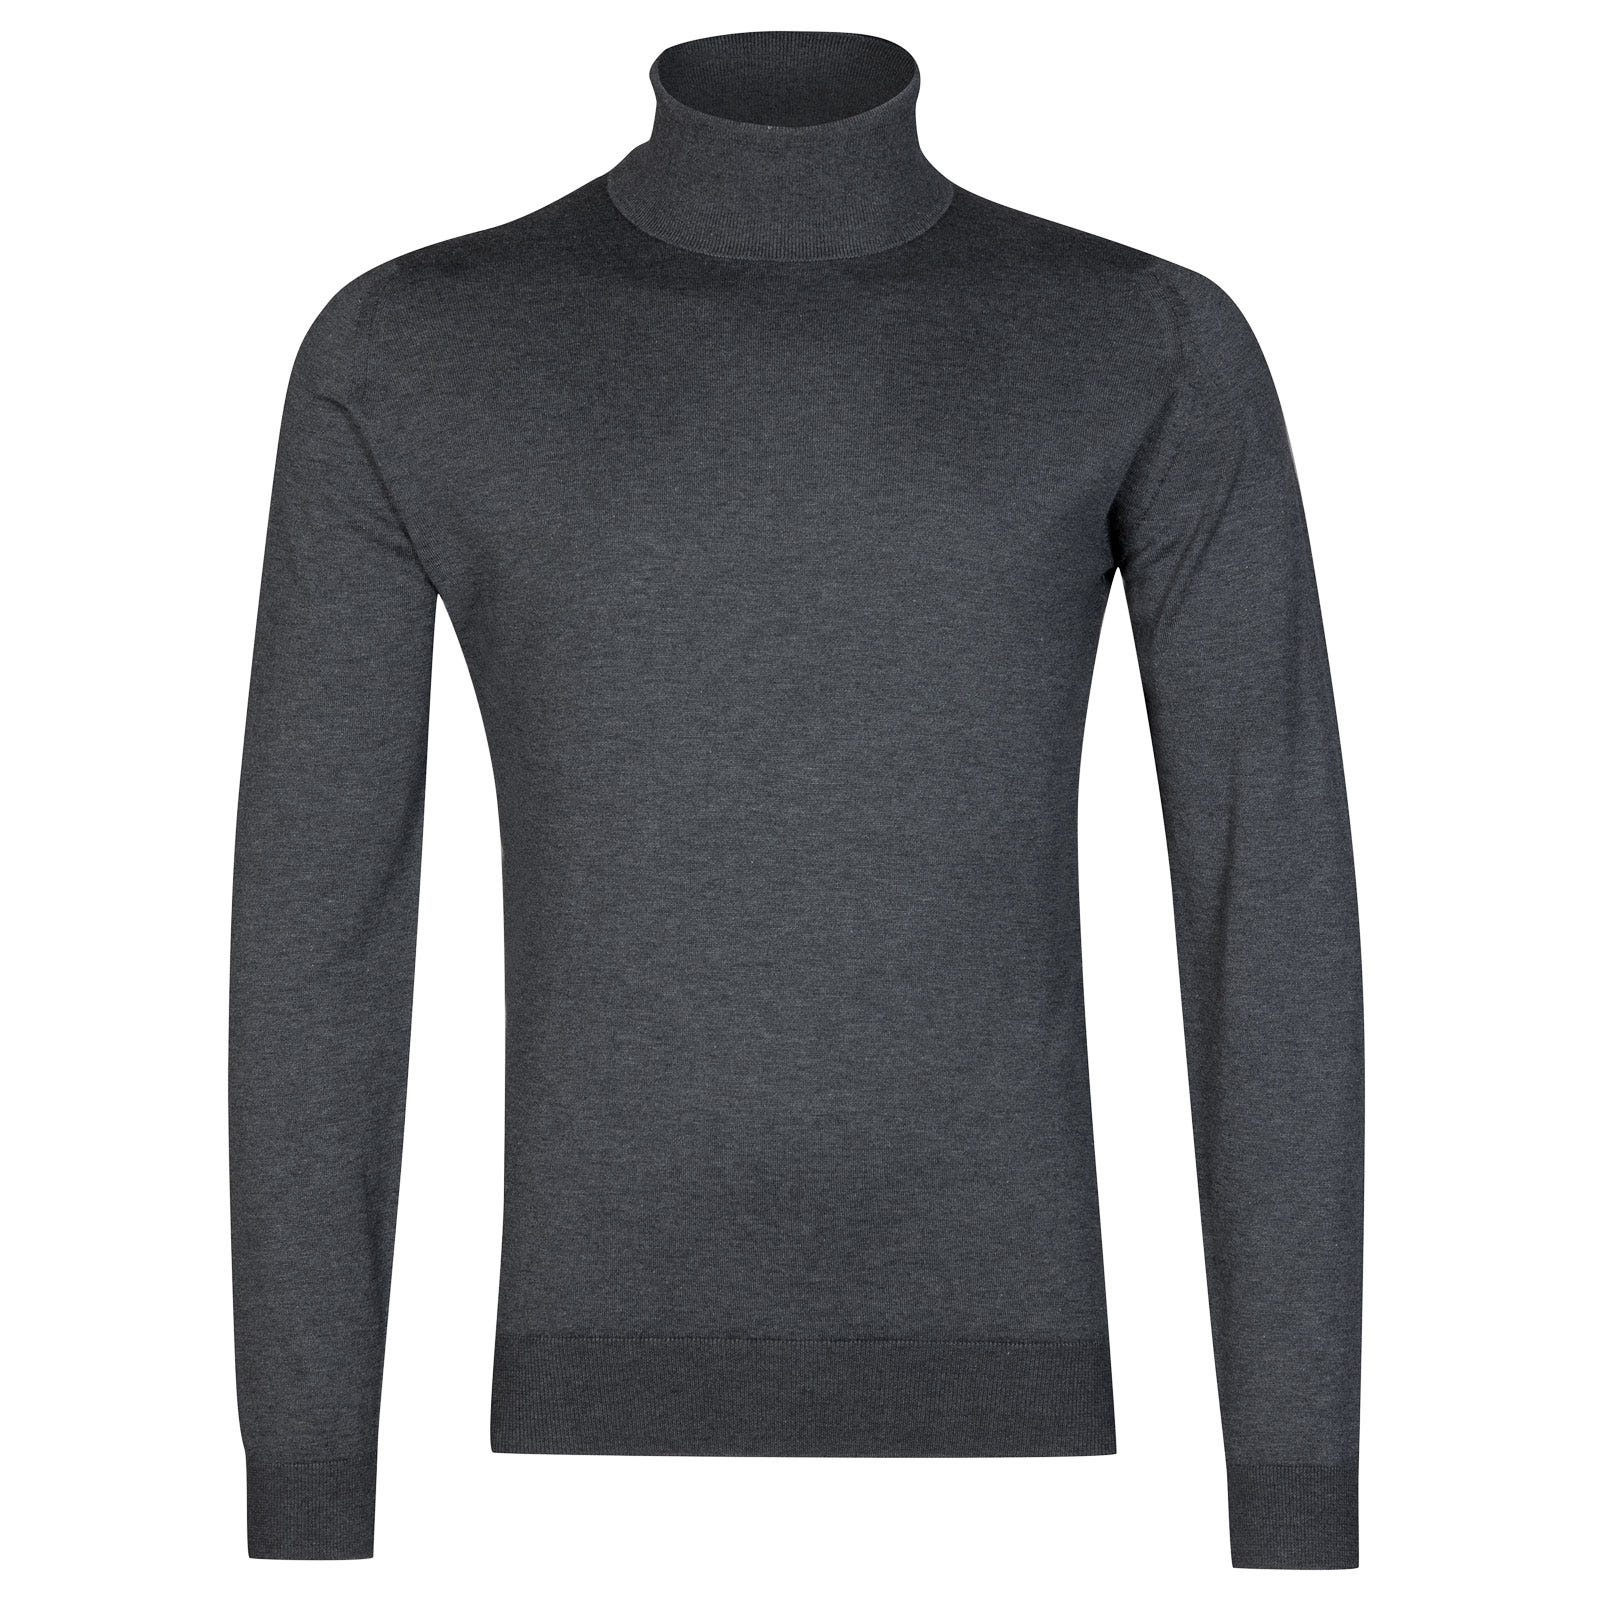 John Smedley Hawley Sea Island Cotton Pullover in Charcoal-M